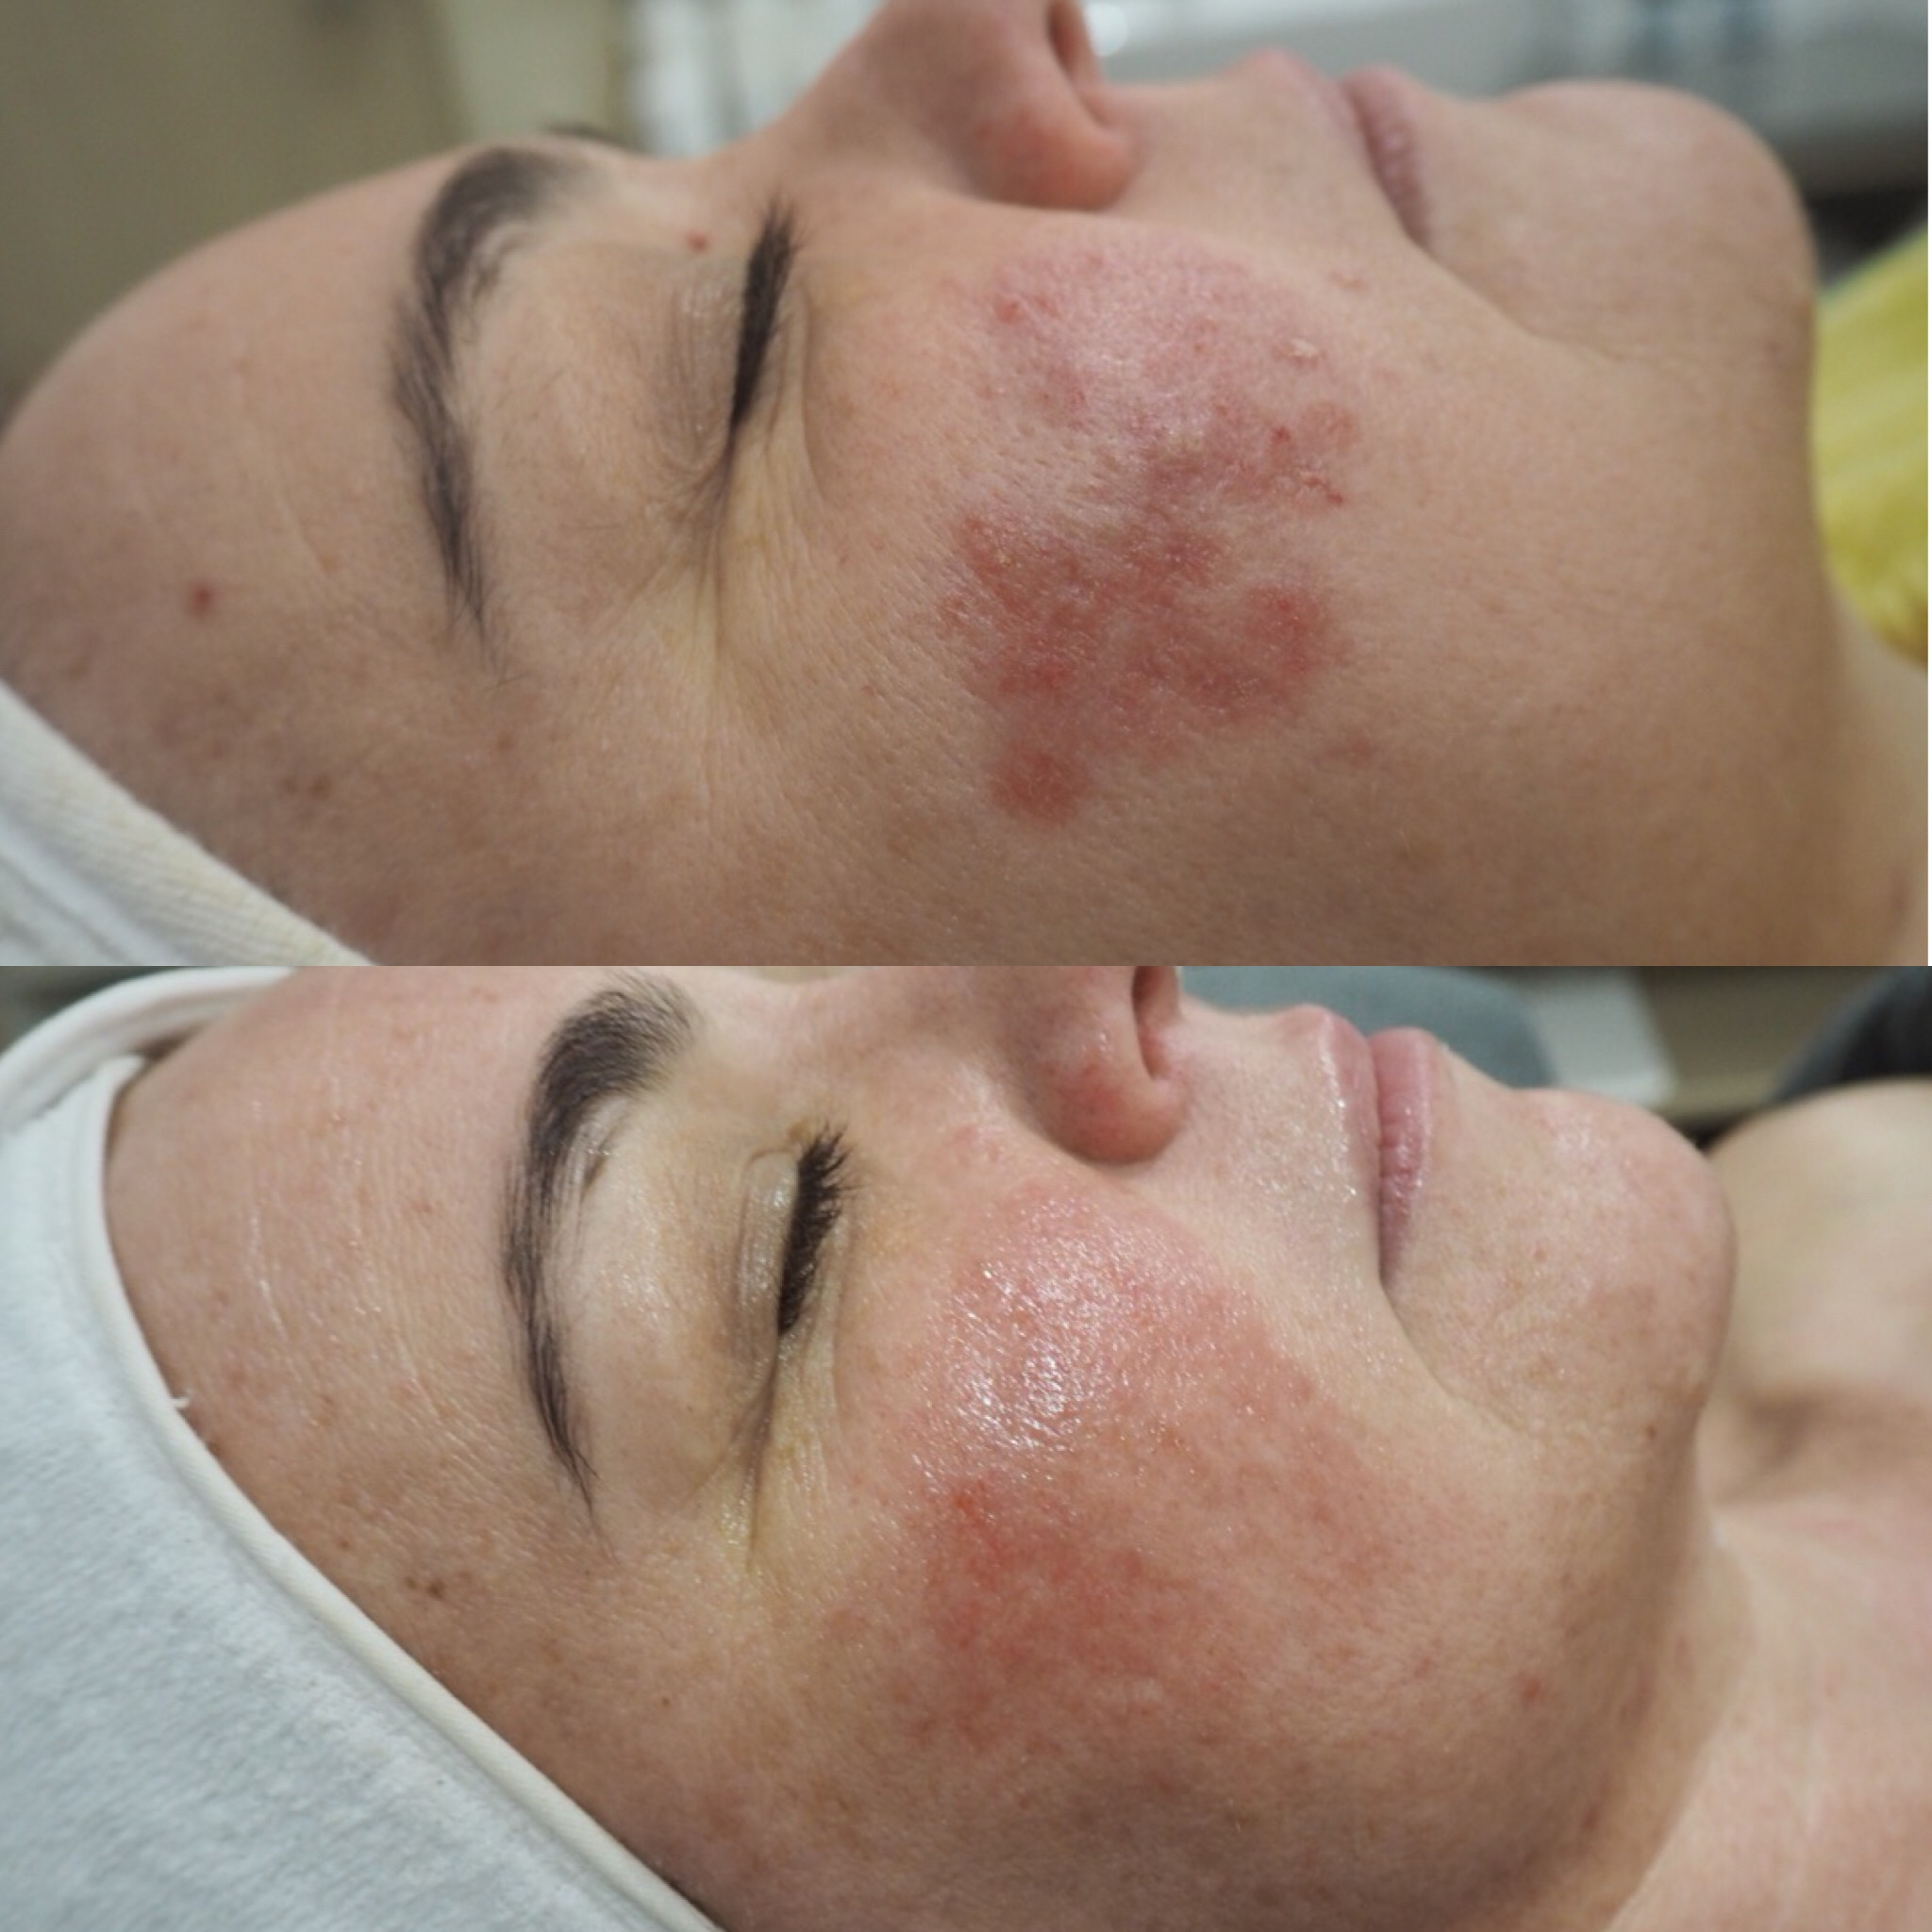 Results for one of our clients suffering from Rosacea, after 6x LED Single Sessions + 5x Level 2 Enzyme Peels with add on LED.